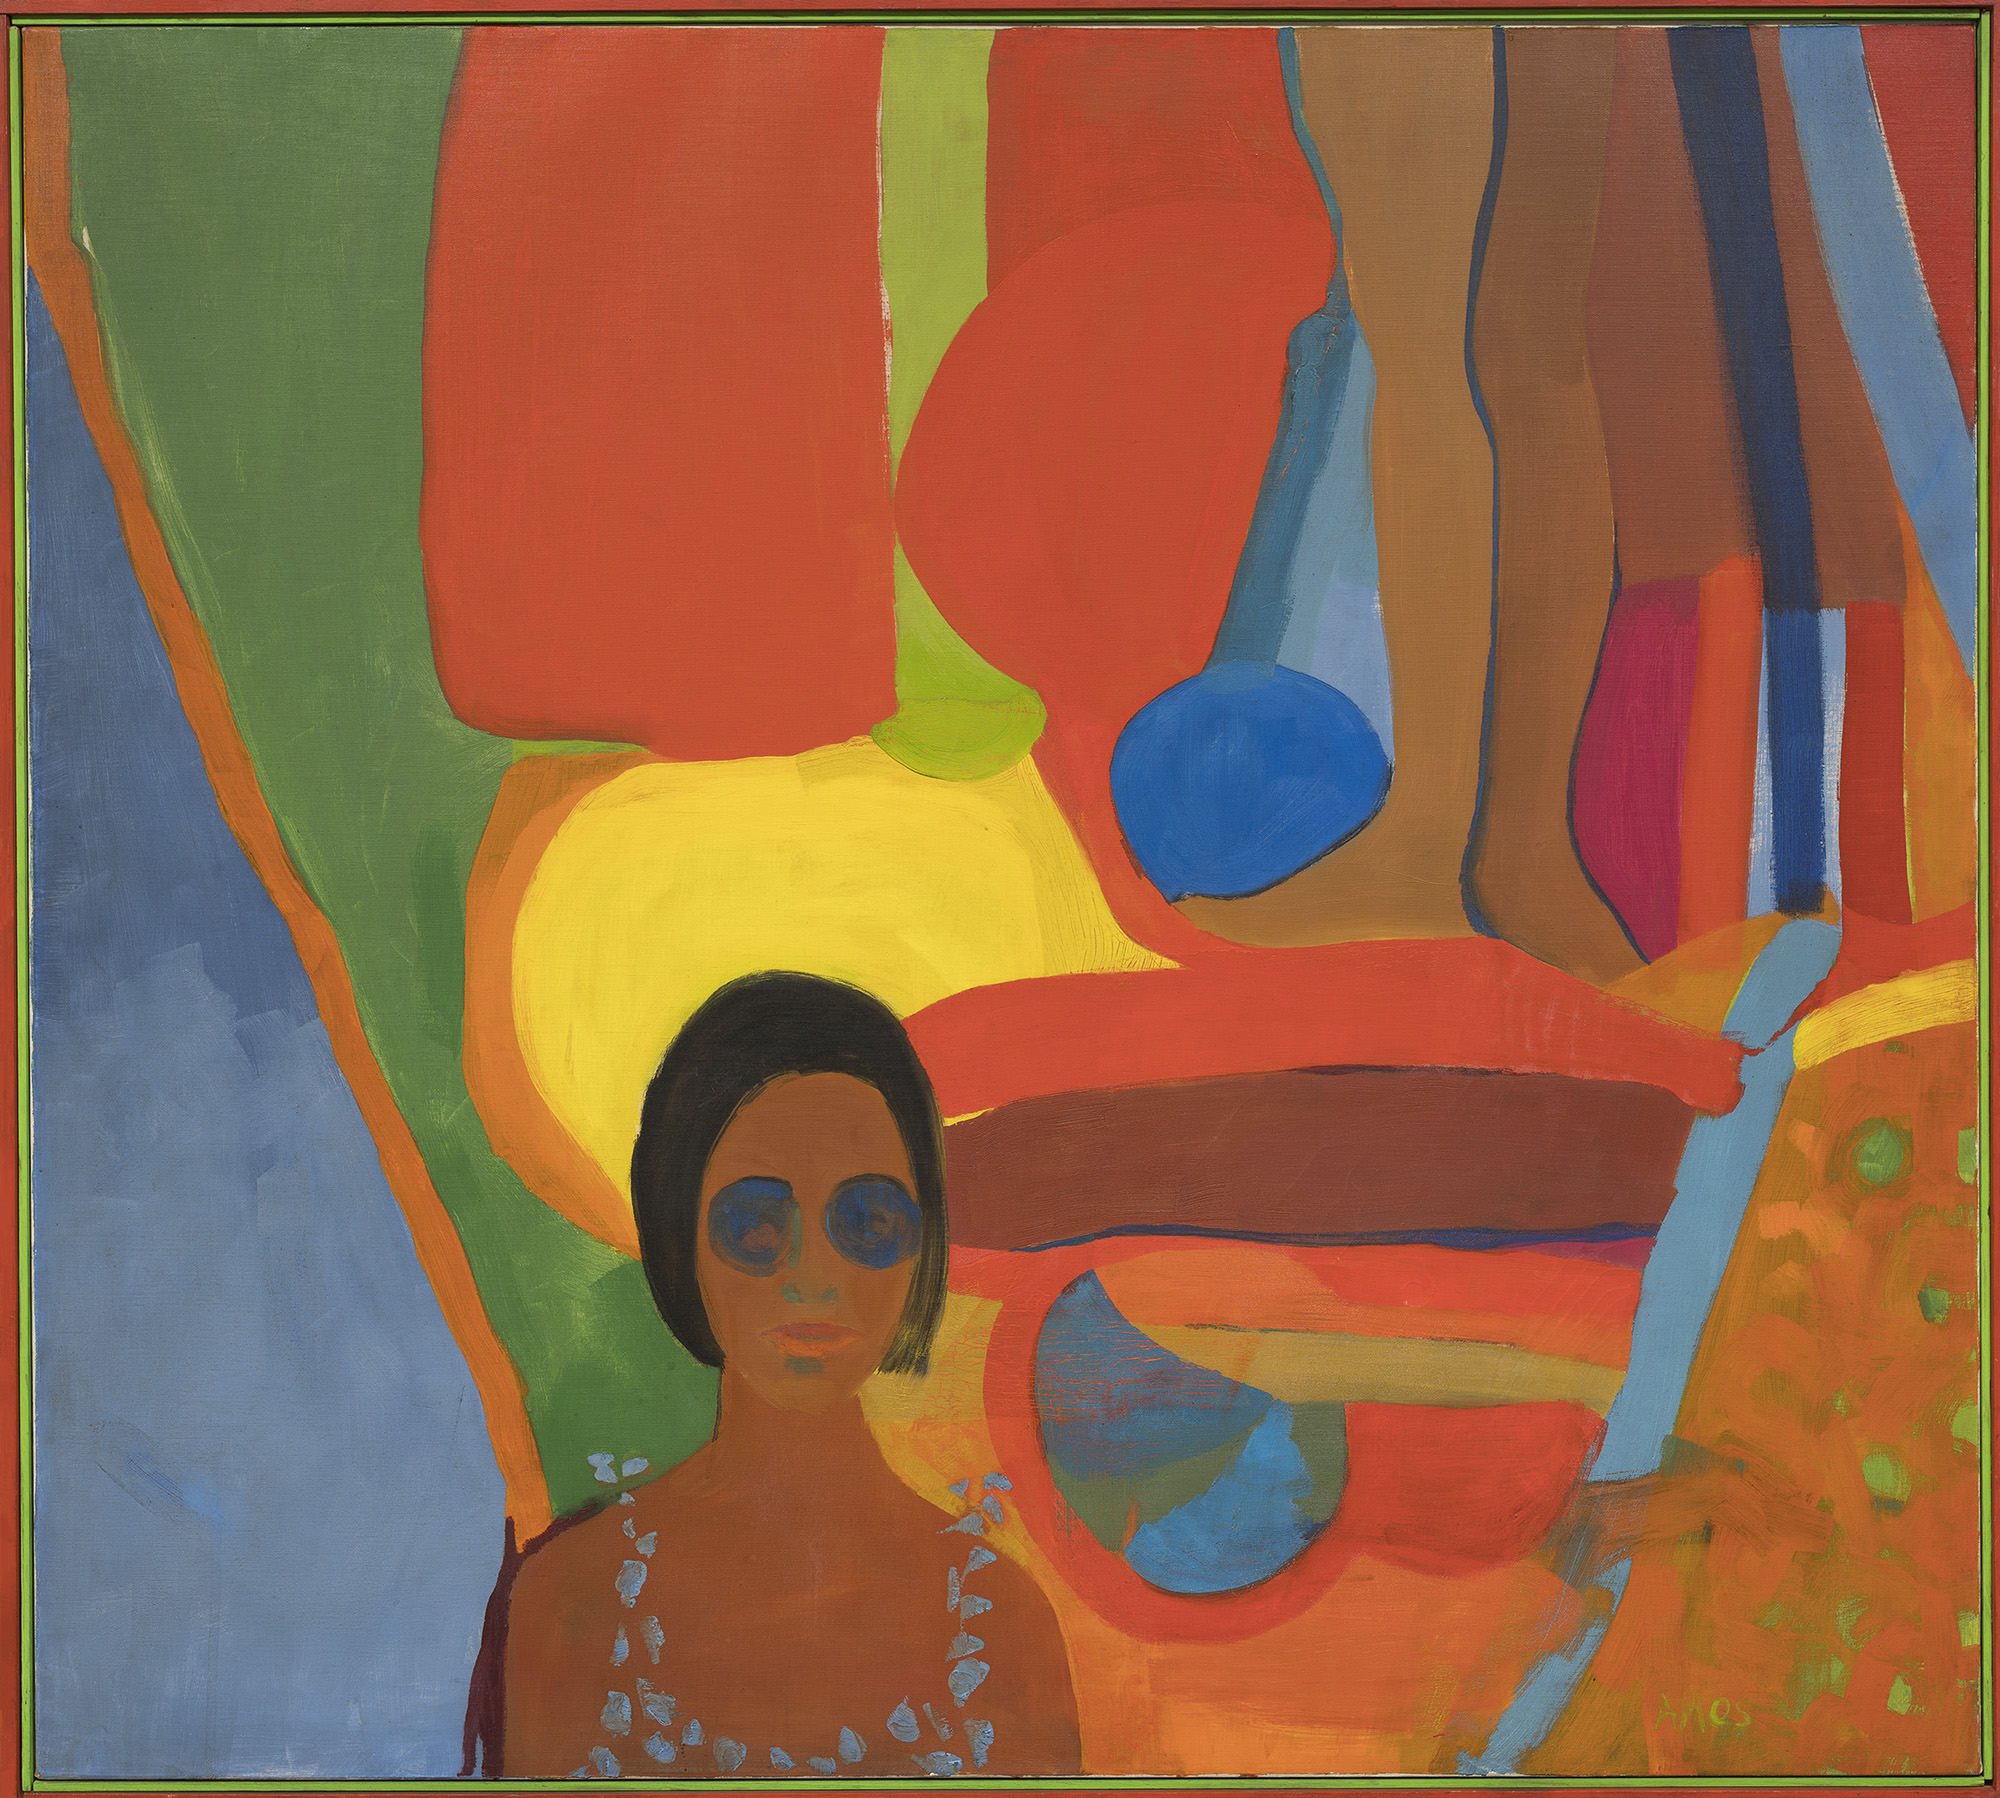 Emma Amos (b. 1938),  Baby , 1966. Oil on canvas, 46 1/2 × 51 in. (118.1 × 129.5 cm). Whitney Museum of American Art, New York; purchased jointly by the Whitney Museum of American Art, with funds from the Painting and Sculpture Committee; and The Studio Museum in Harlem, museum purchase with funds provided by Ann Tenenbaum and Thomas H. Lee T.2018.33a-b. © Emma Amos; courtesy of the artist and RYAN LEE Gallery, New York